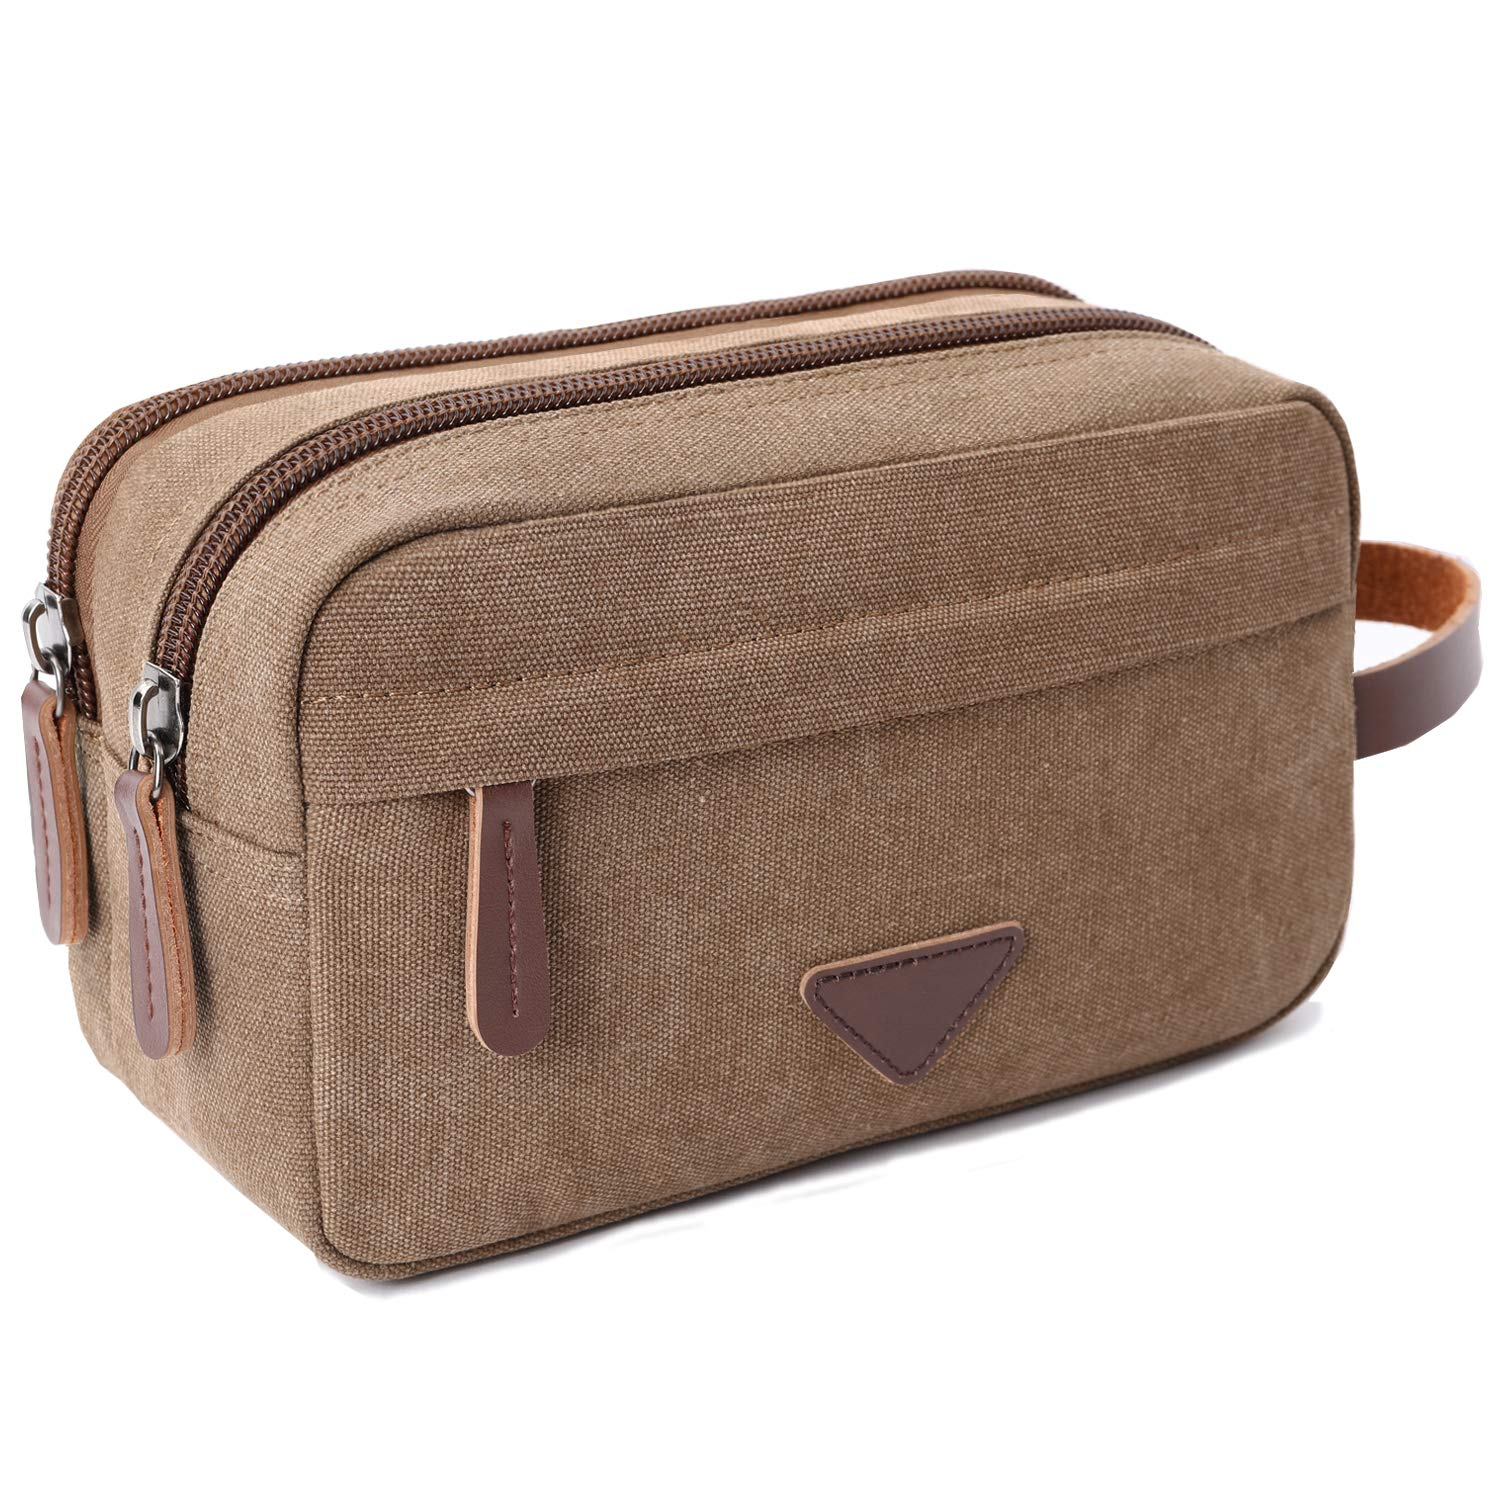 d5a1a896fde43 Amazon.com : Mens Travel Toiletry Bag Canvas Leather Cosmetic Makeup  Organizer Shaving Dopp Kits with Double Compartments (Coffee) : Beauty